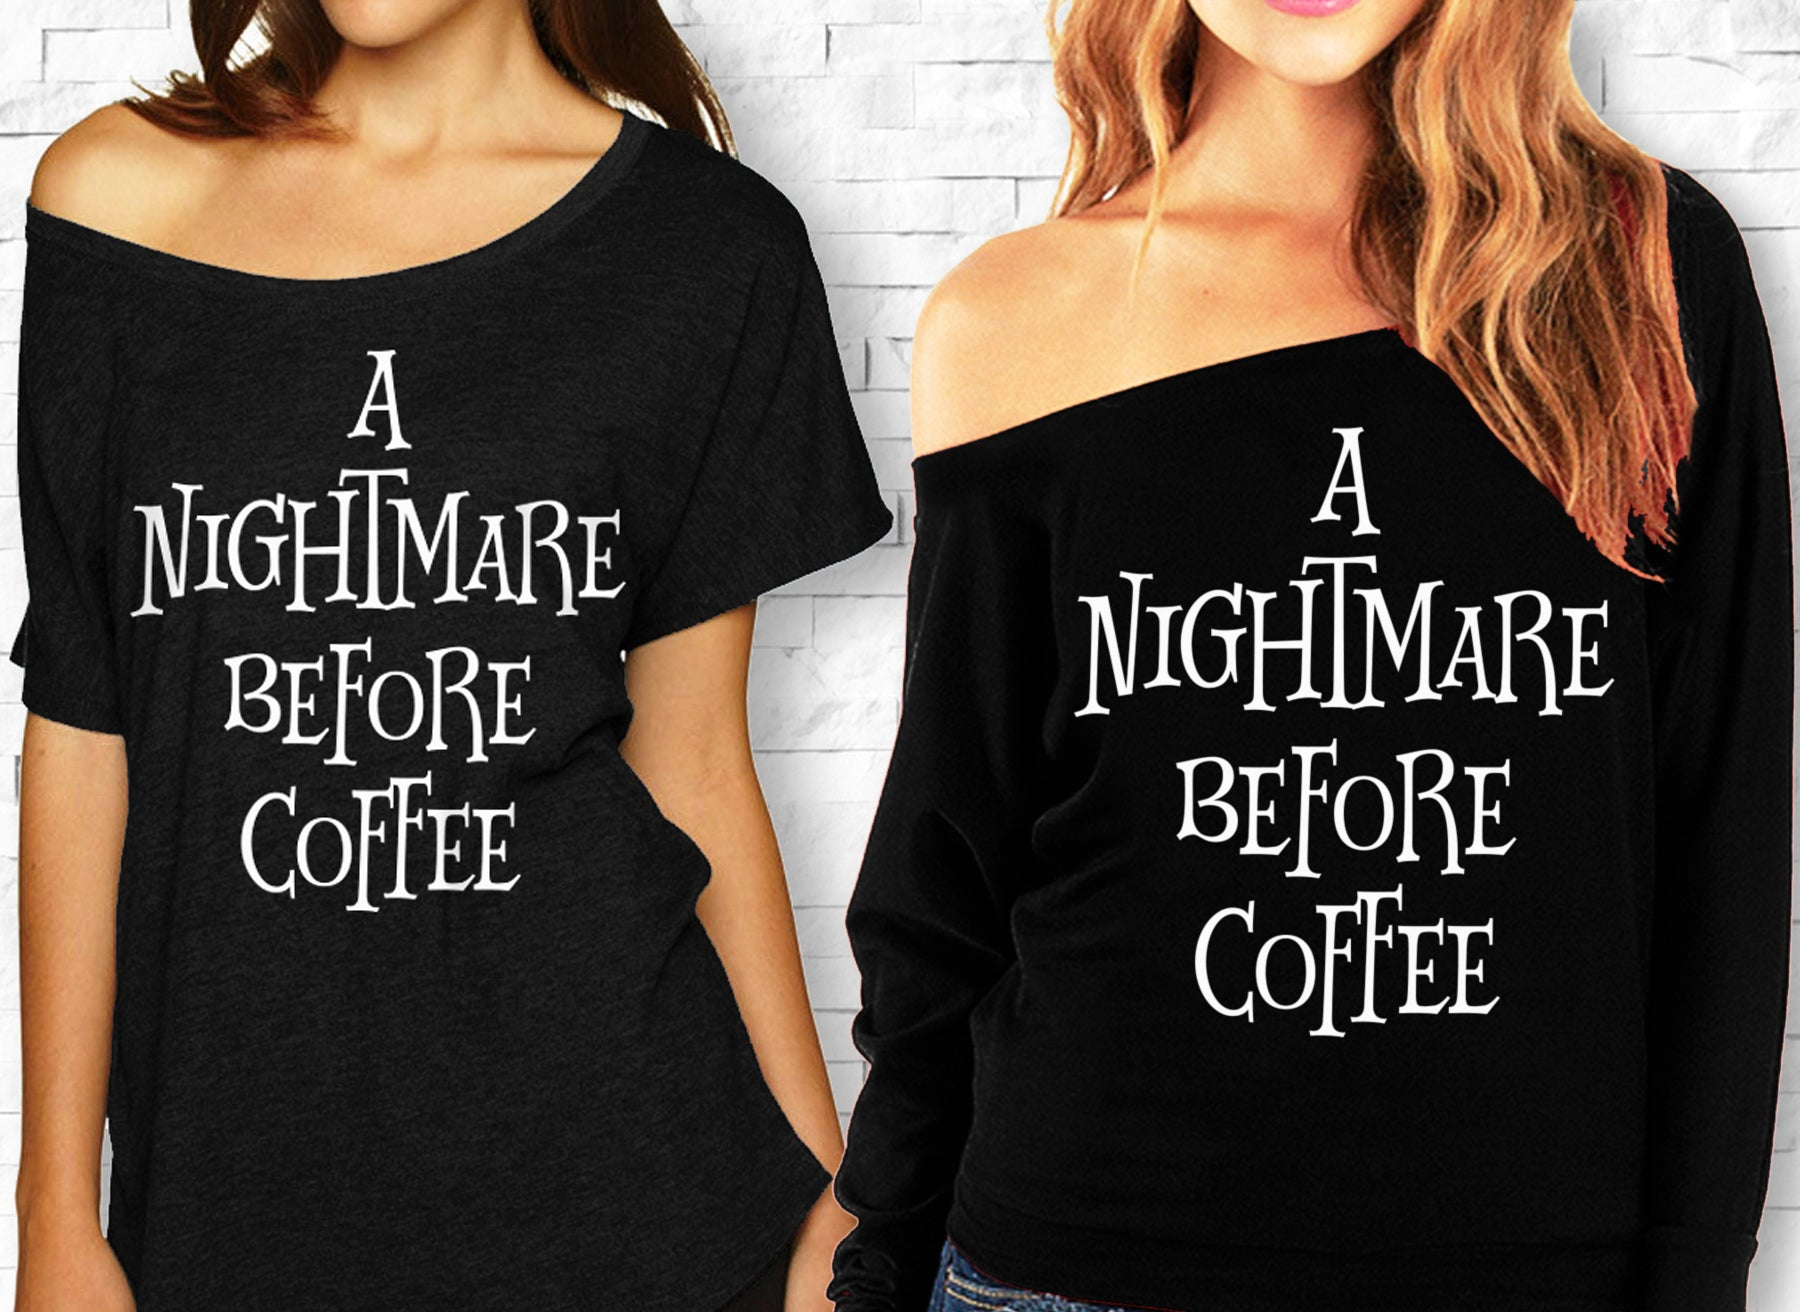 cab911167ee2 A NIGHTMARE BEFORE COFFEE Halloween Off-Shoulder Shirt - 2 Styles ...